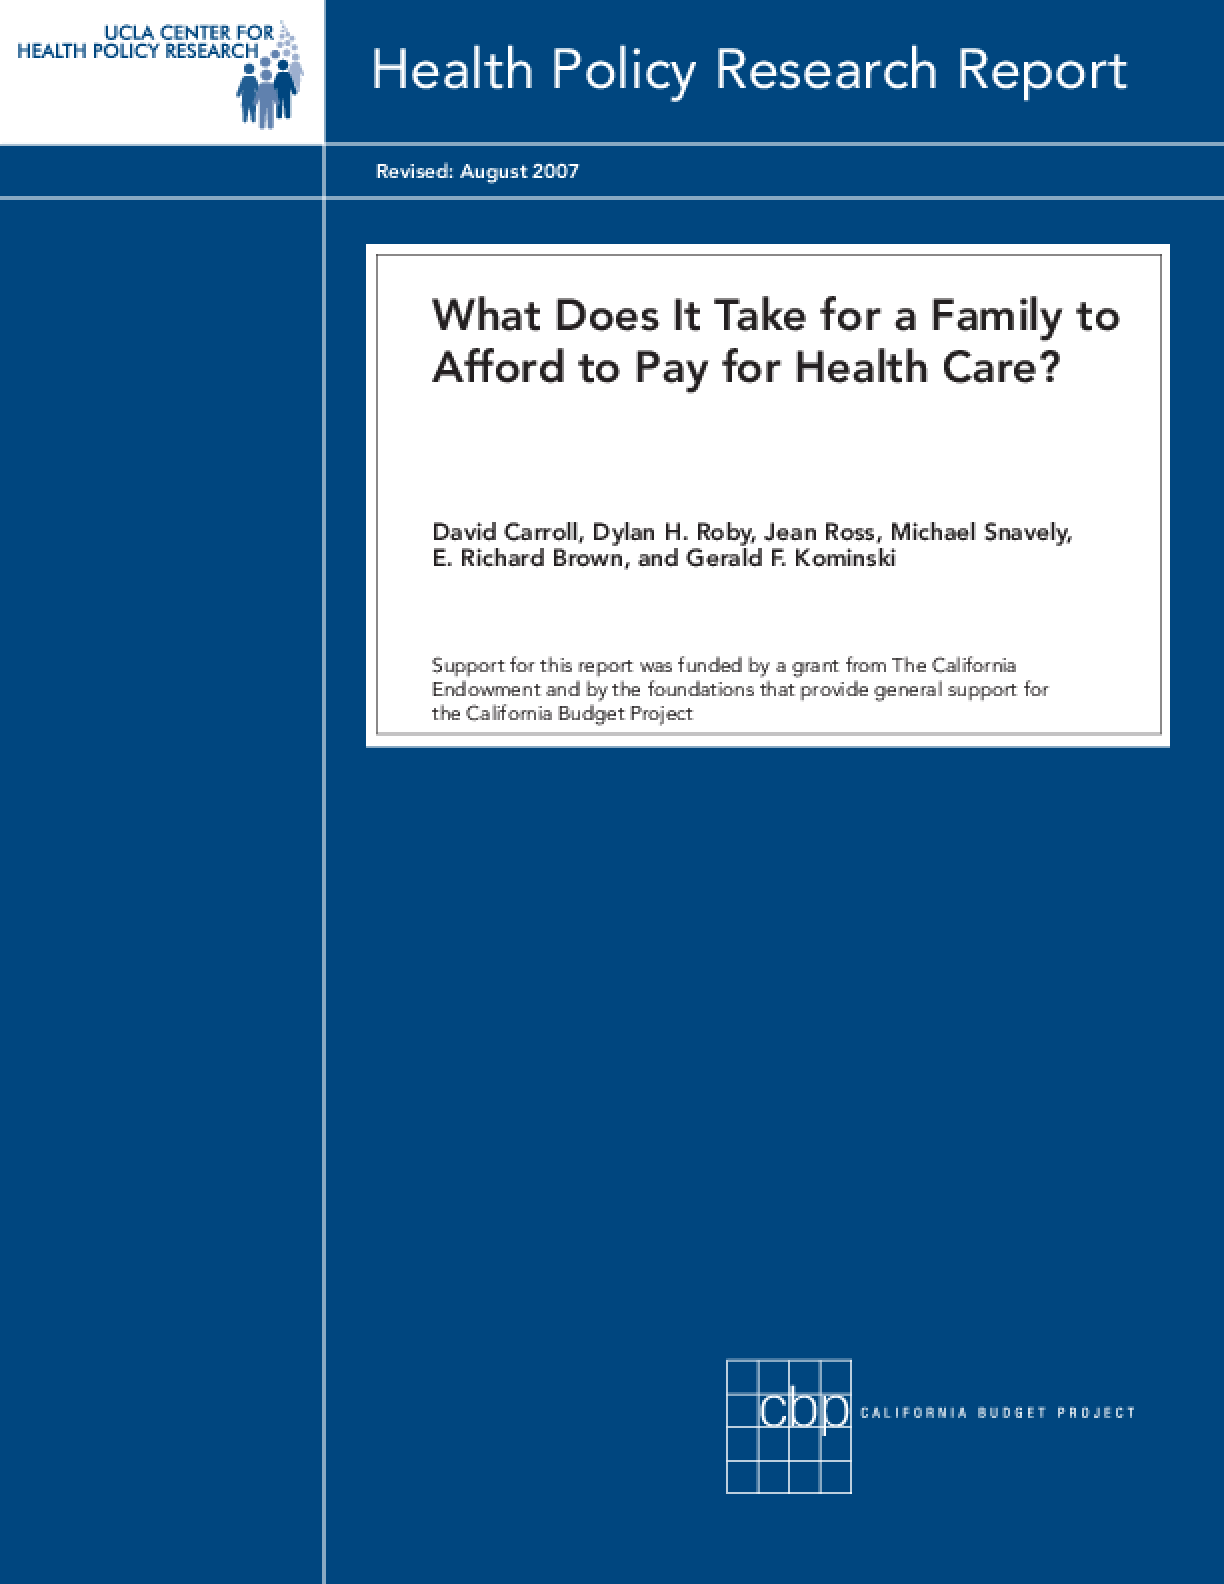 What Does It Take for a Family to Afford to Pay for Health Care?